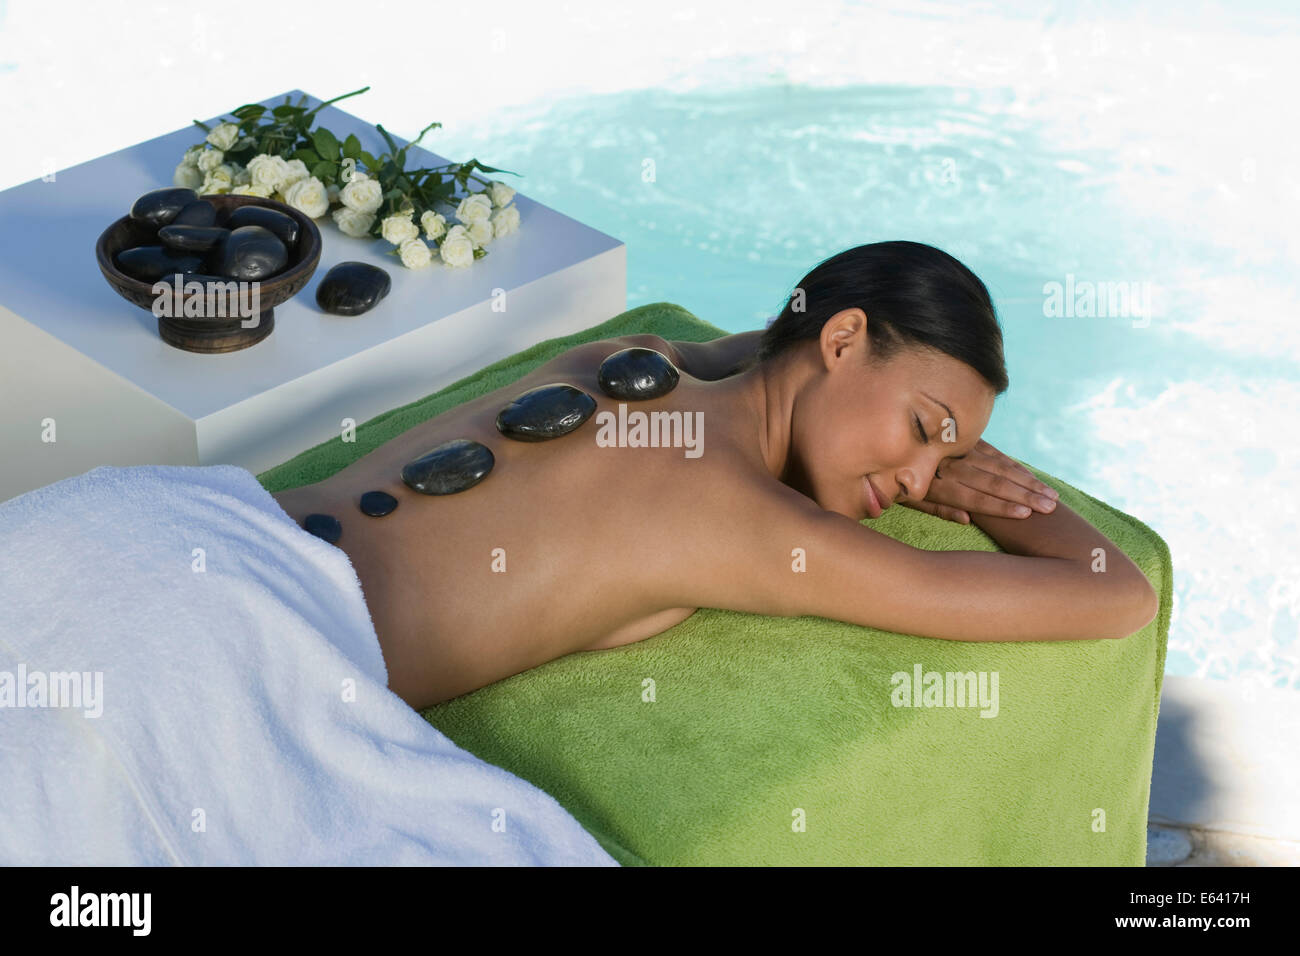 Woman enjoying a wellness and spa treatment, South Africa - Stock Image